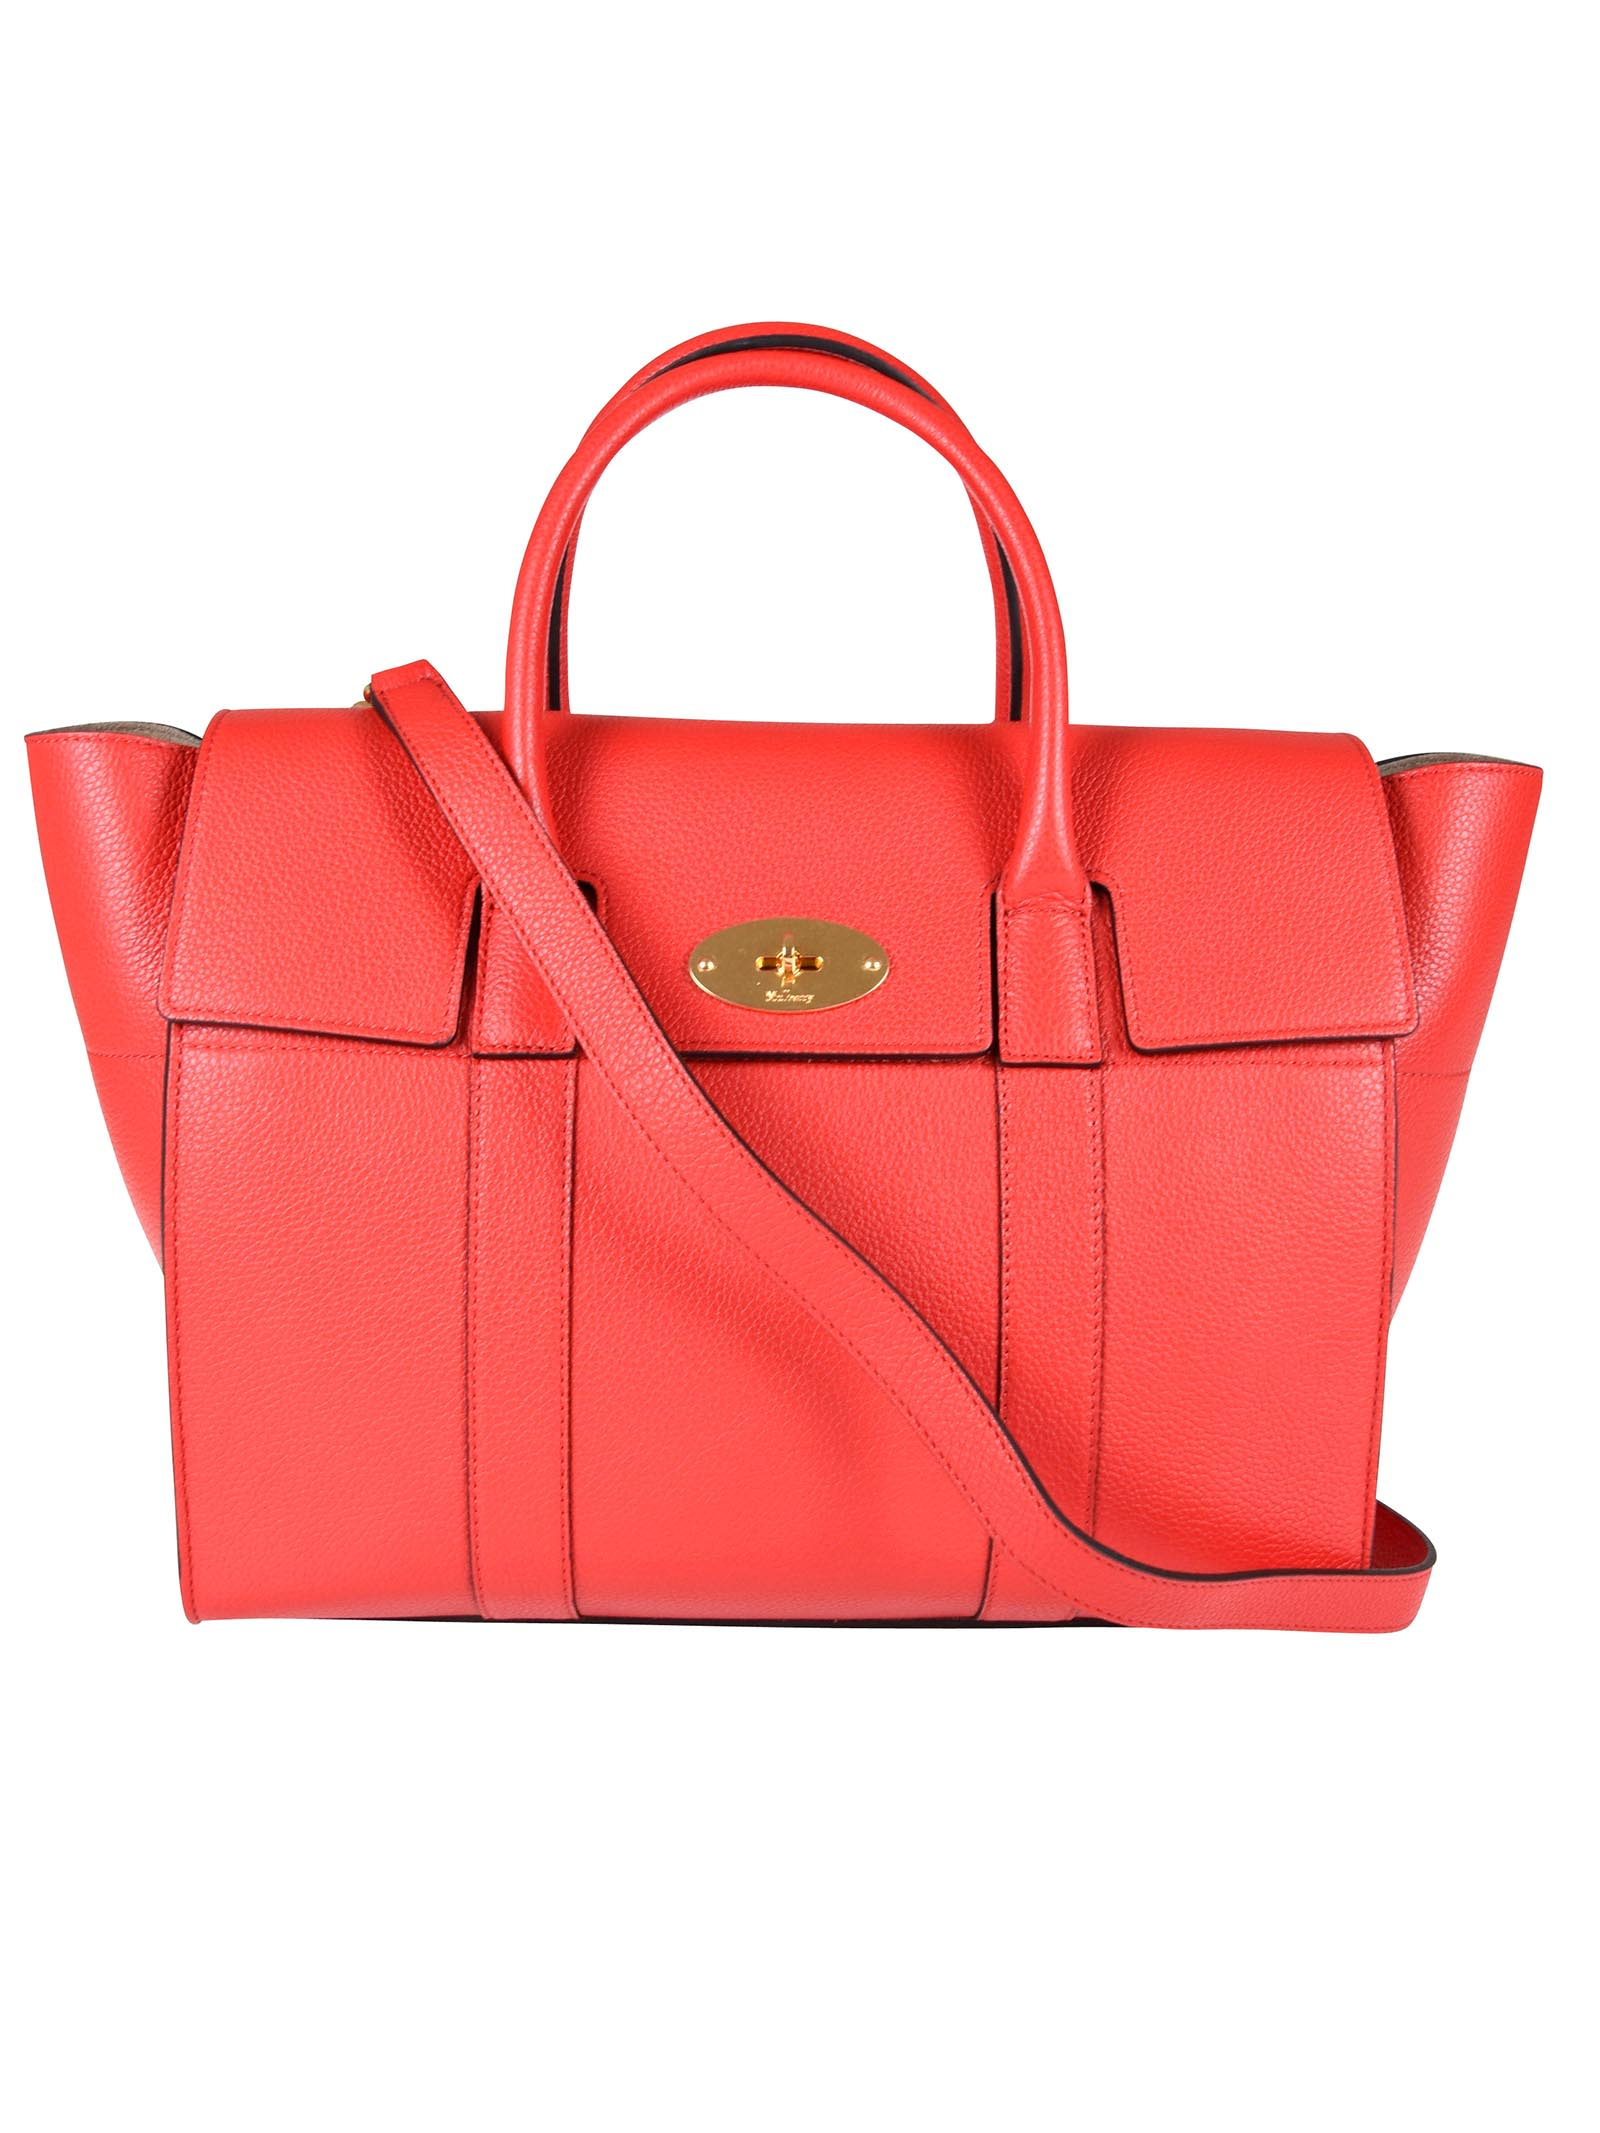 1bb2f13c61 Mulberry Fold-over Tote - Lruby Red ...